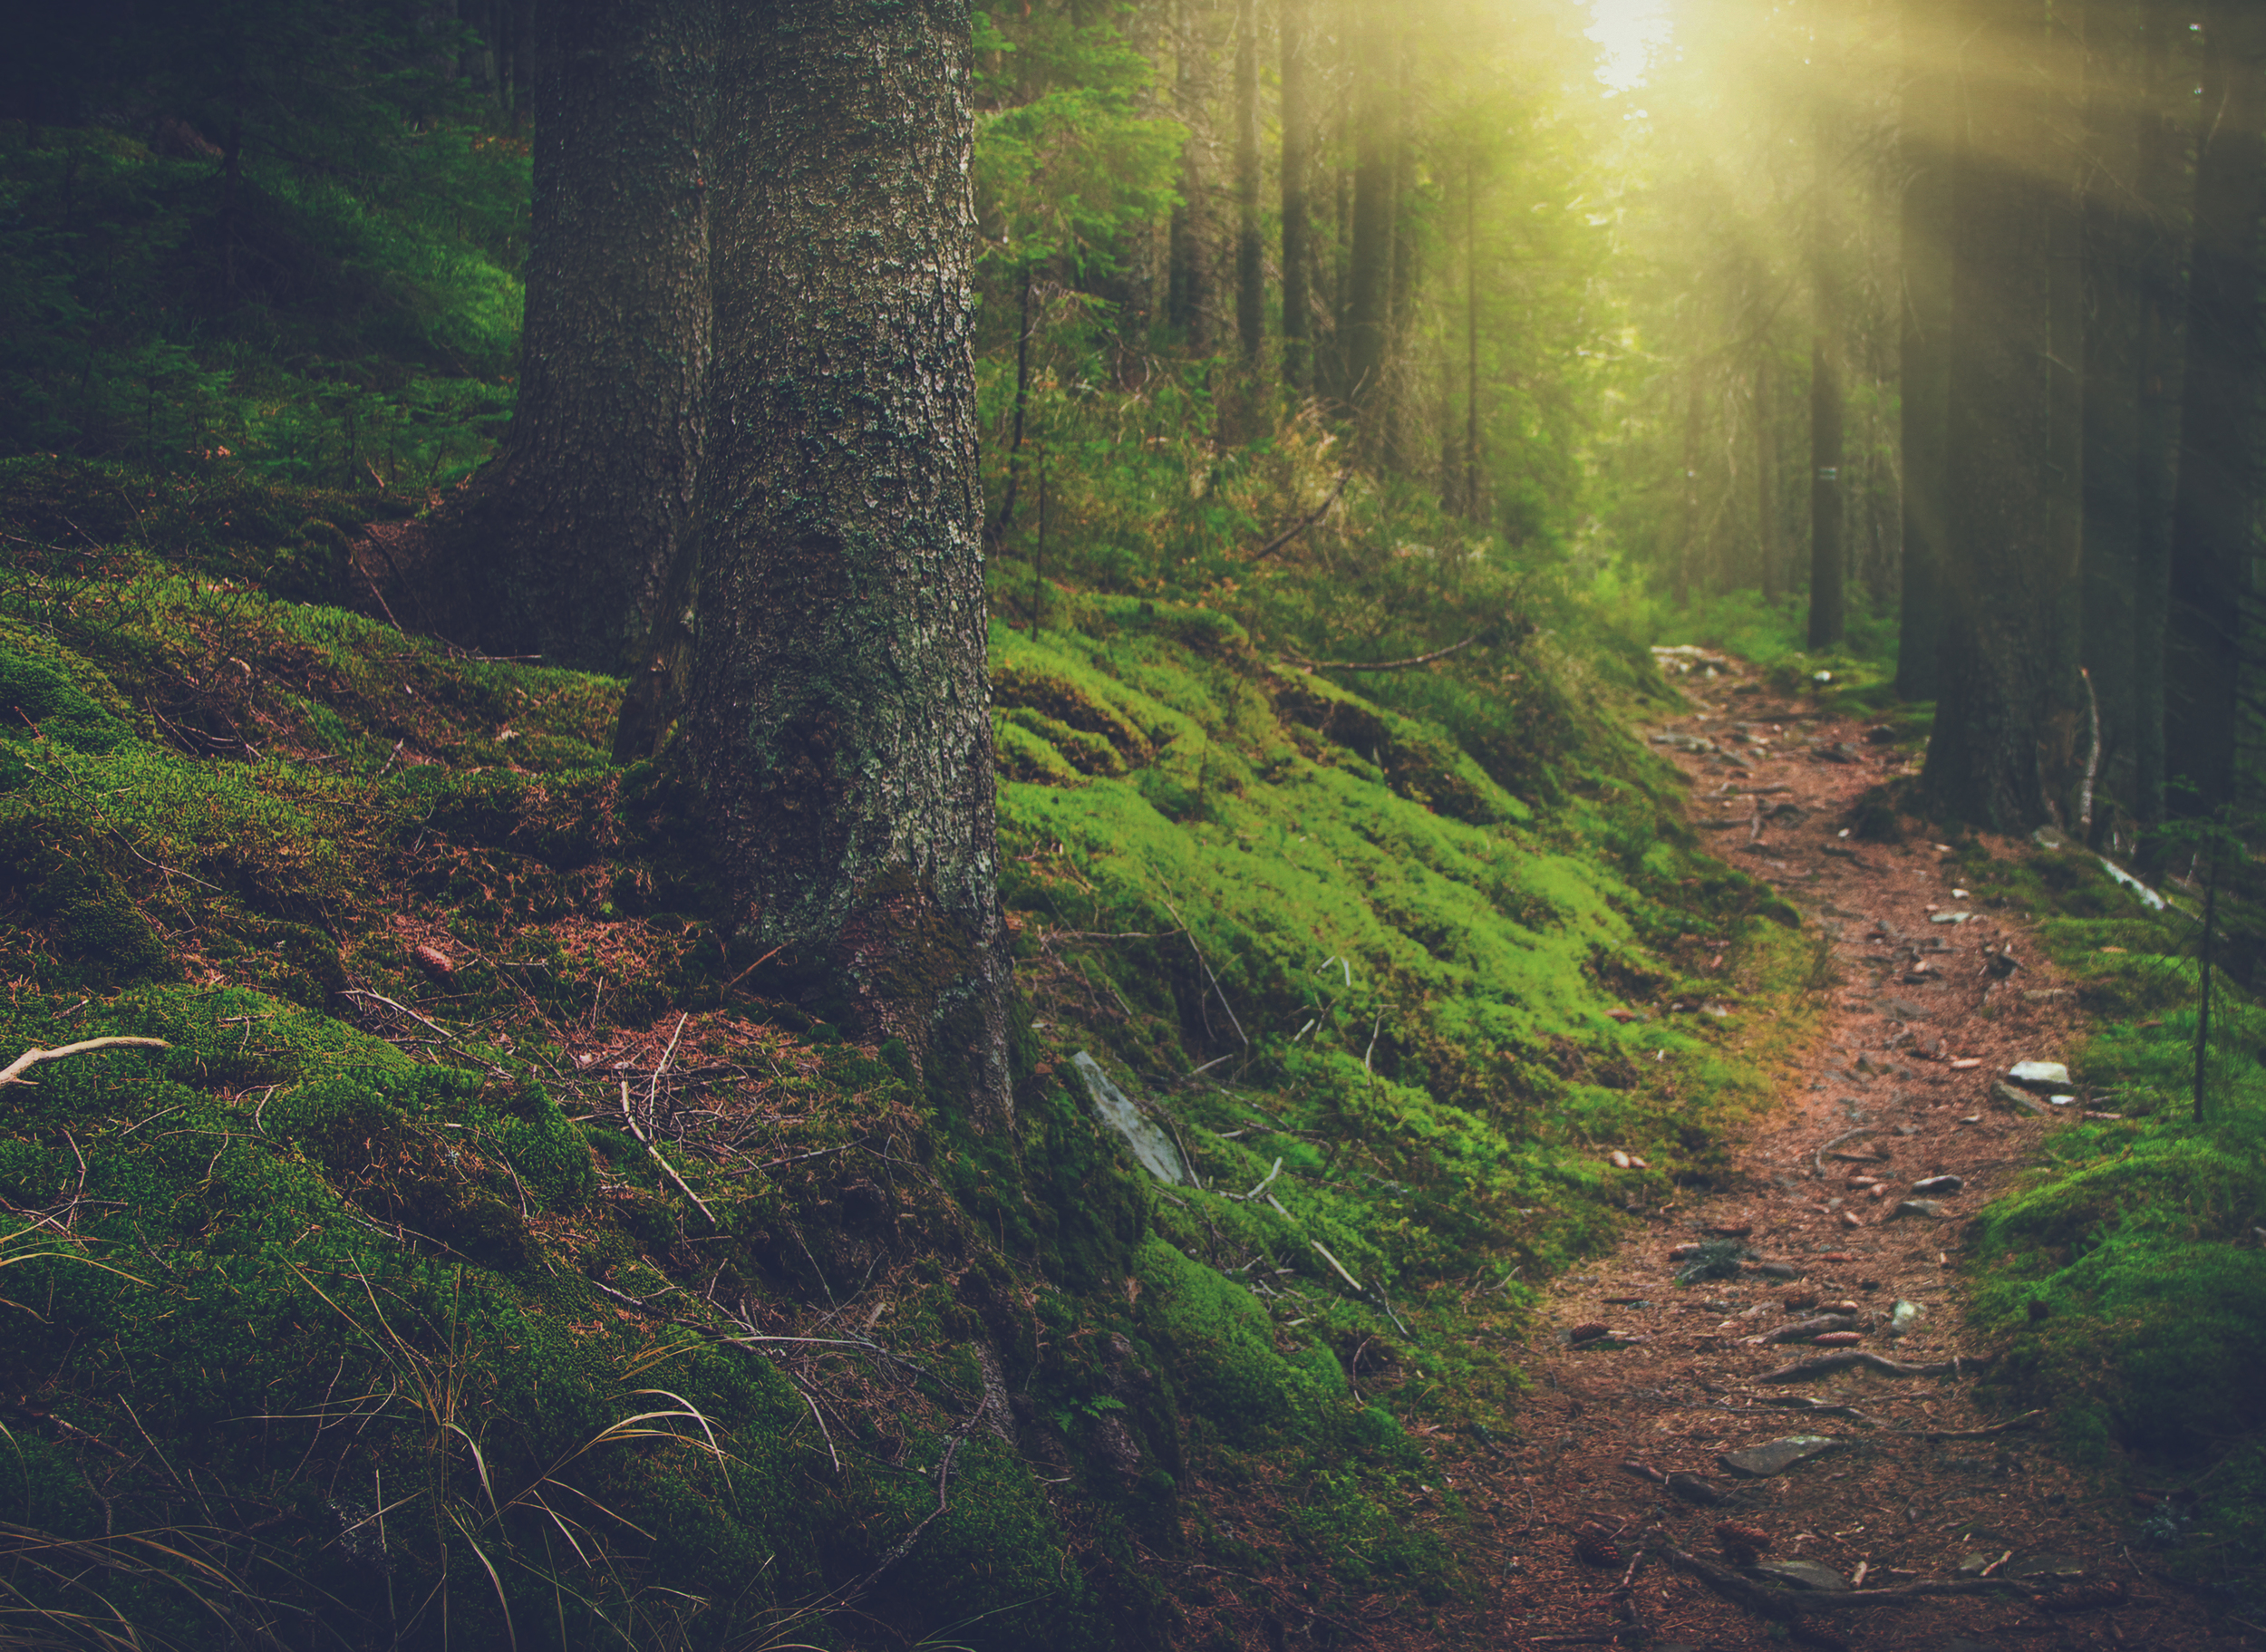 41138294-Landscape-dense-mountain-forest-and-stone-path-between-the-roots-of-trees-in-sunlight--Stock-Photo.jpg